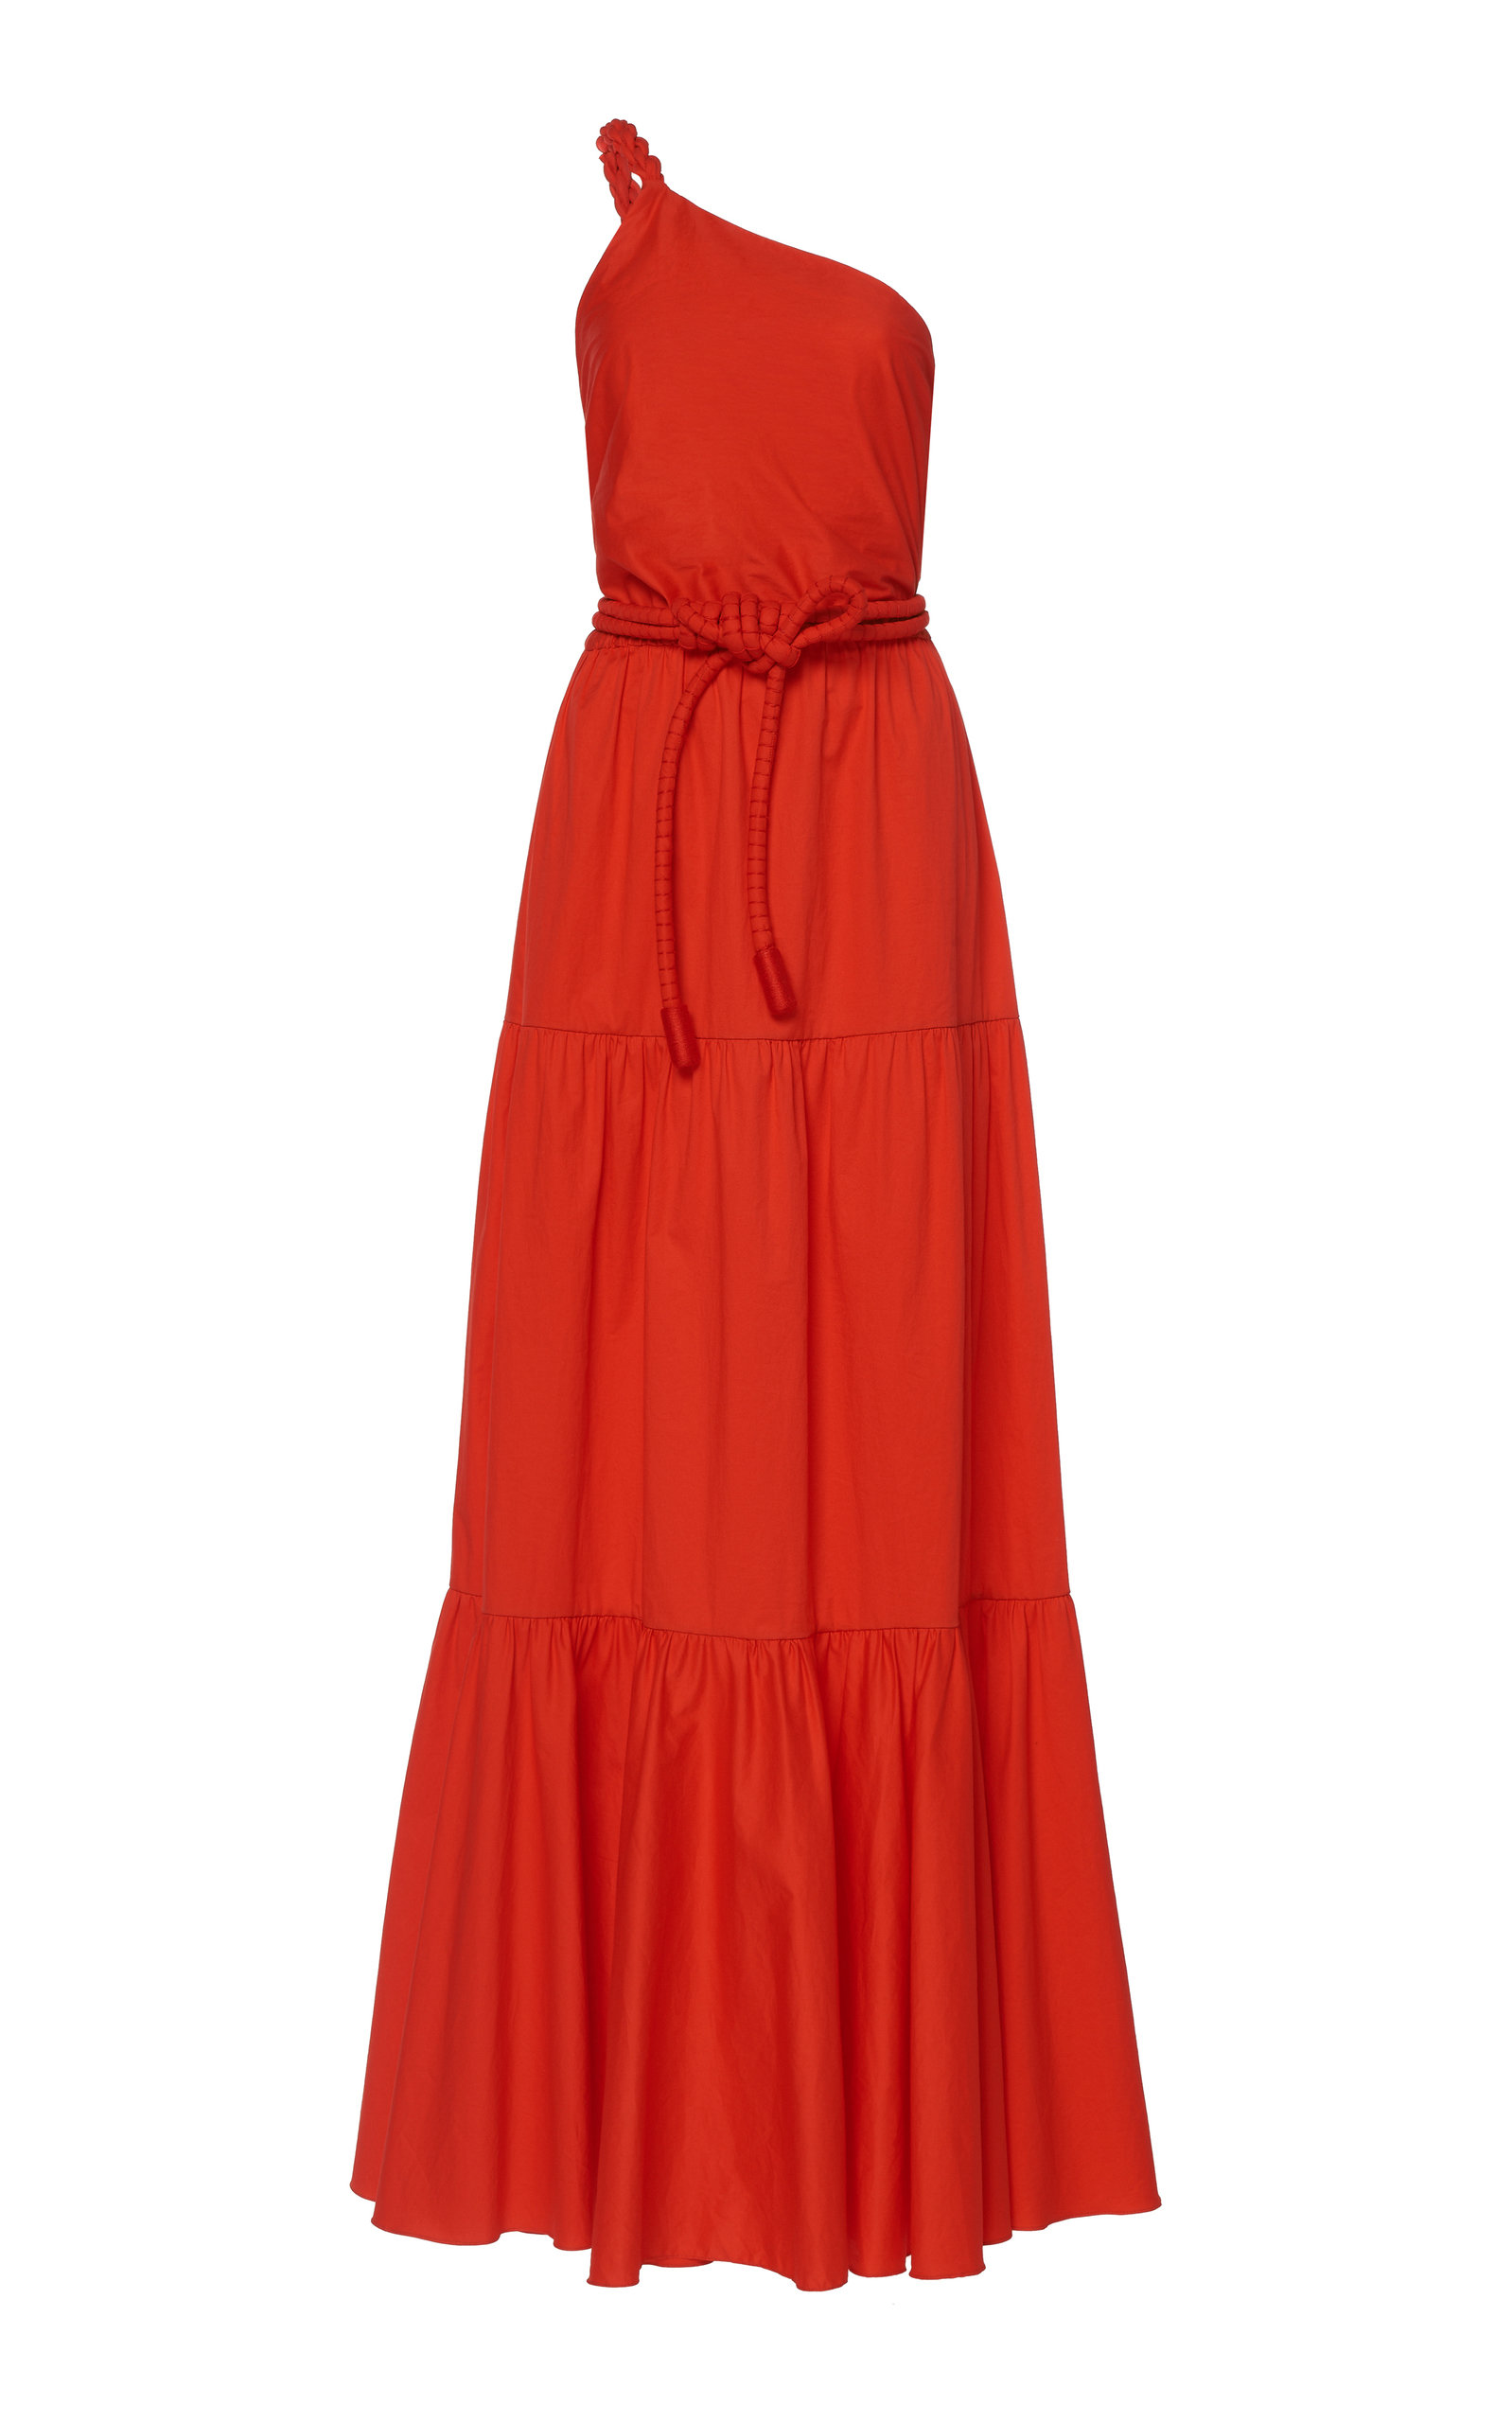 Buy Johanna Ortiz Colorful Flourishes Cotton-Blend Maxi Dress online, shop Johanna Ortiz at the best price